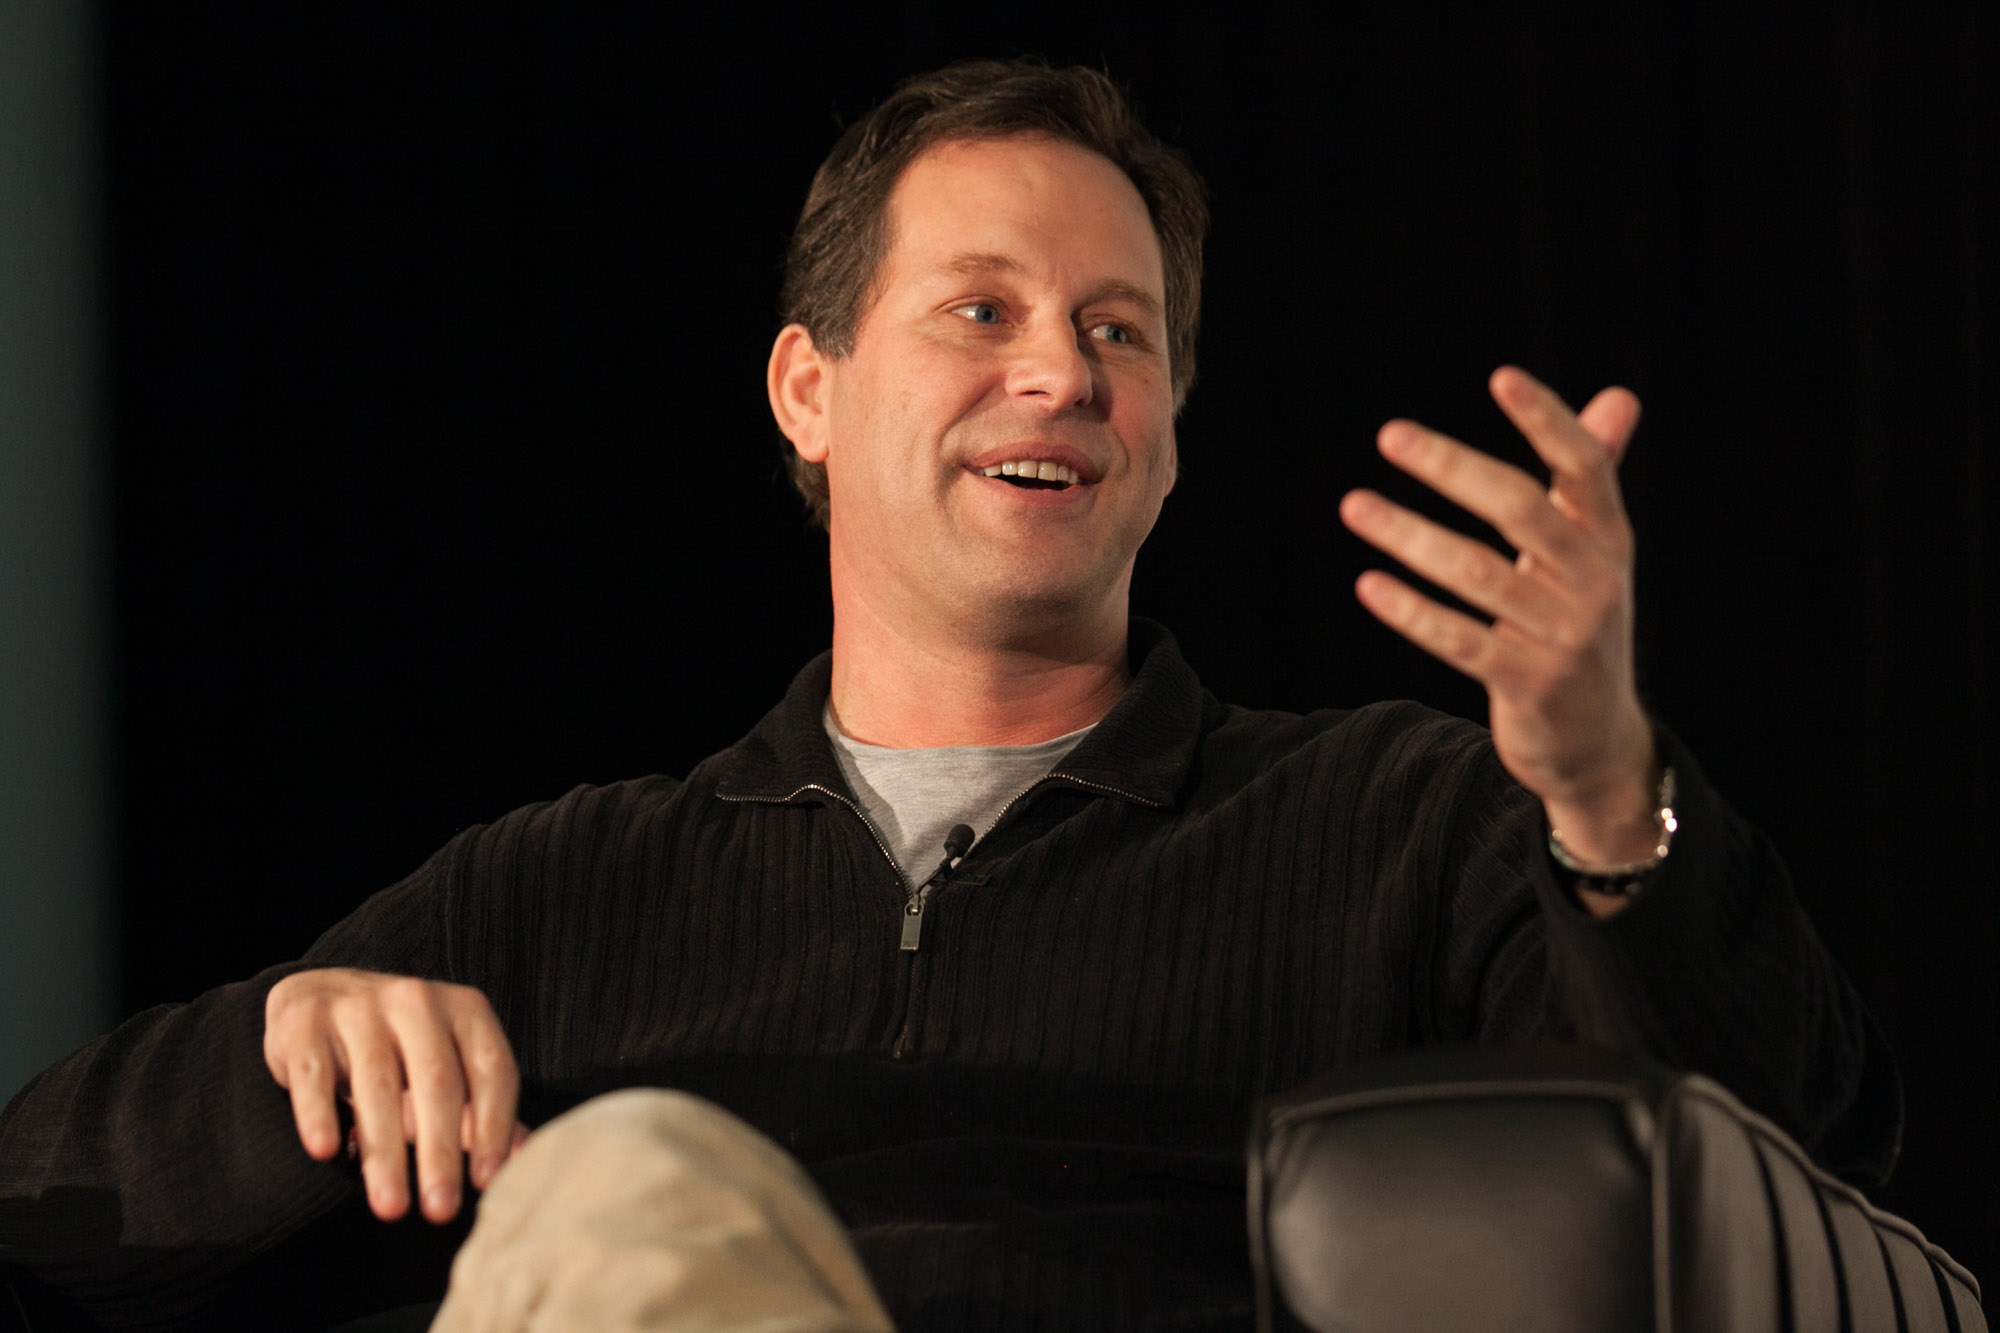 Mike Maples, Floodgate Ventures, at Startup Grind 2014